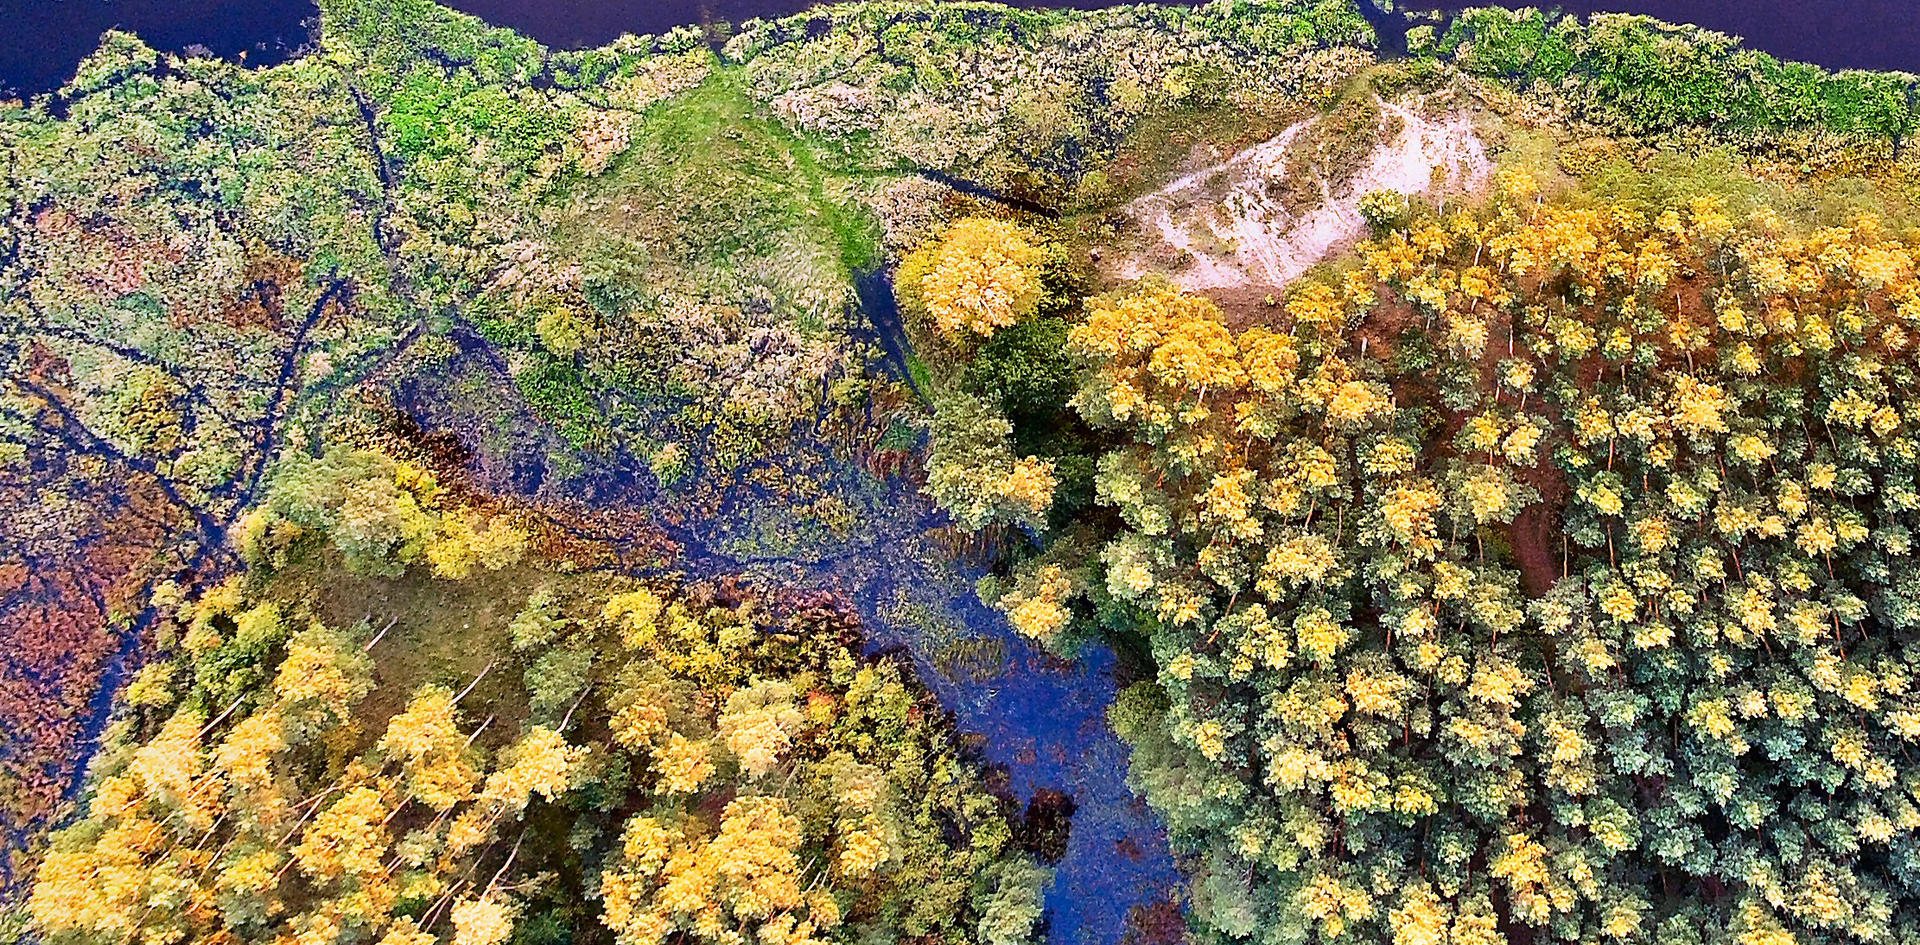 Boreal forest, stream and river